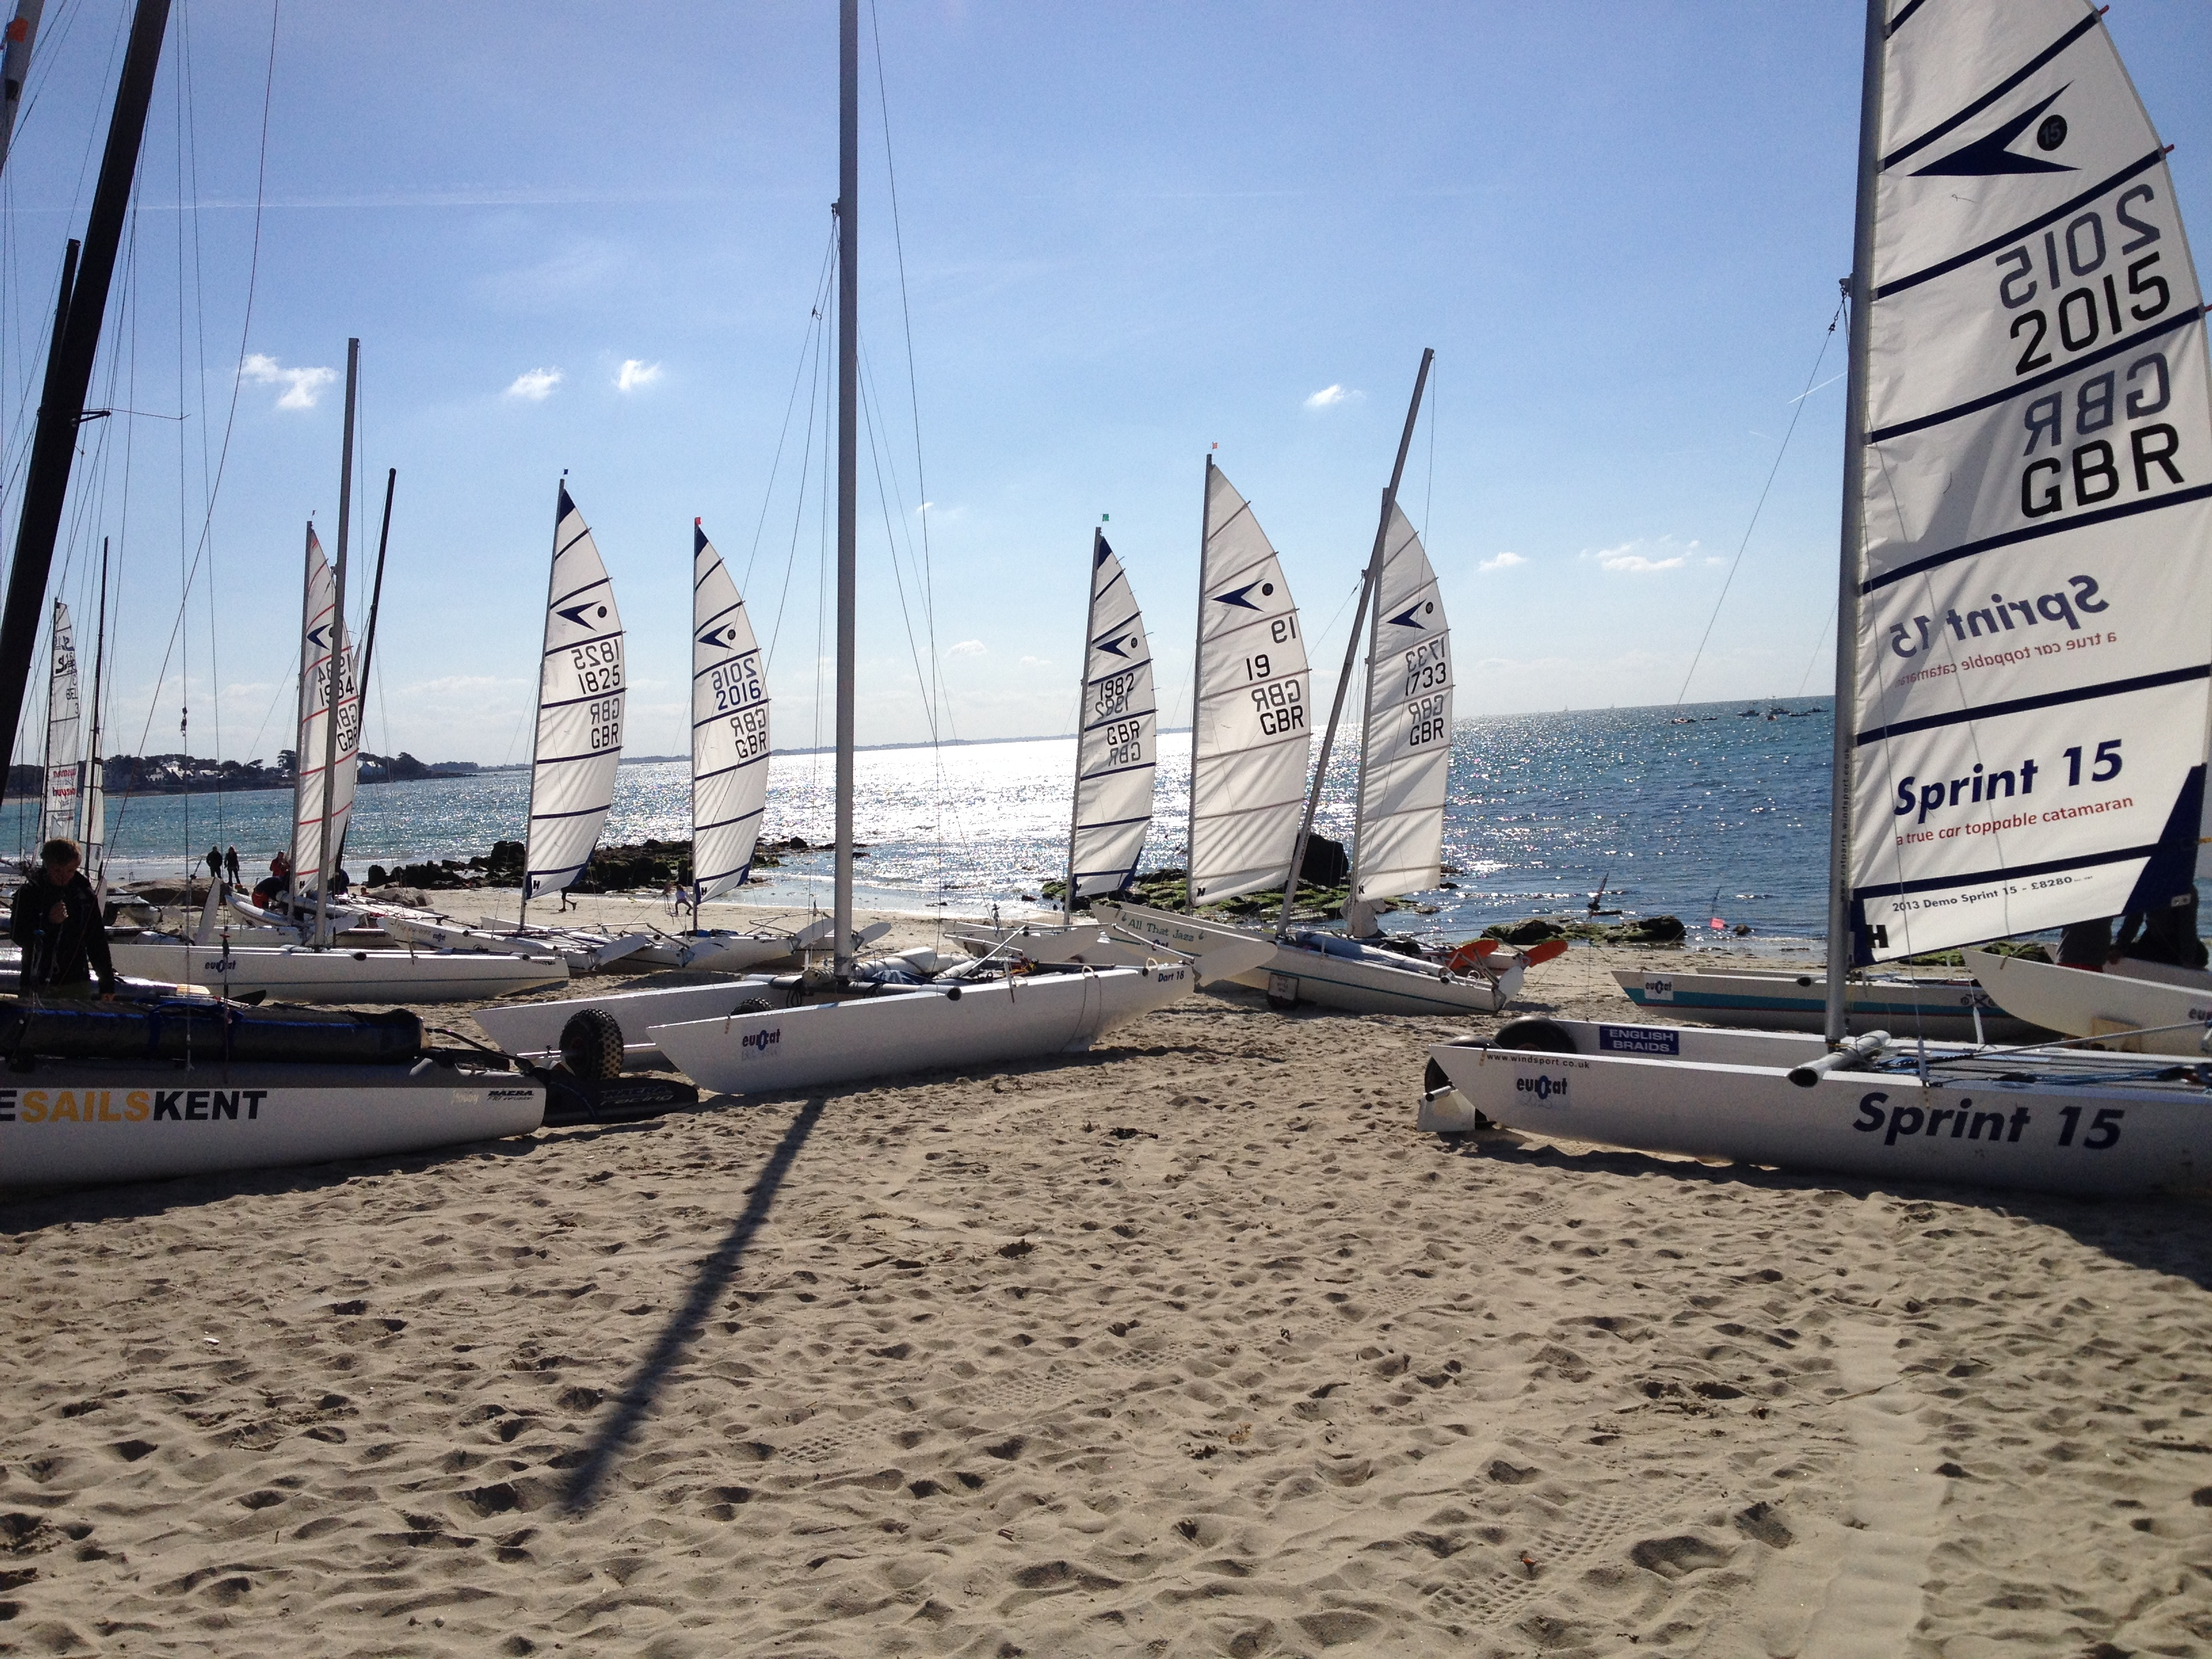 Sprint 15s at Eurocat 2014